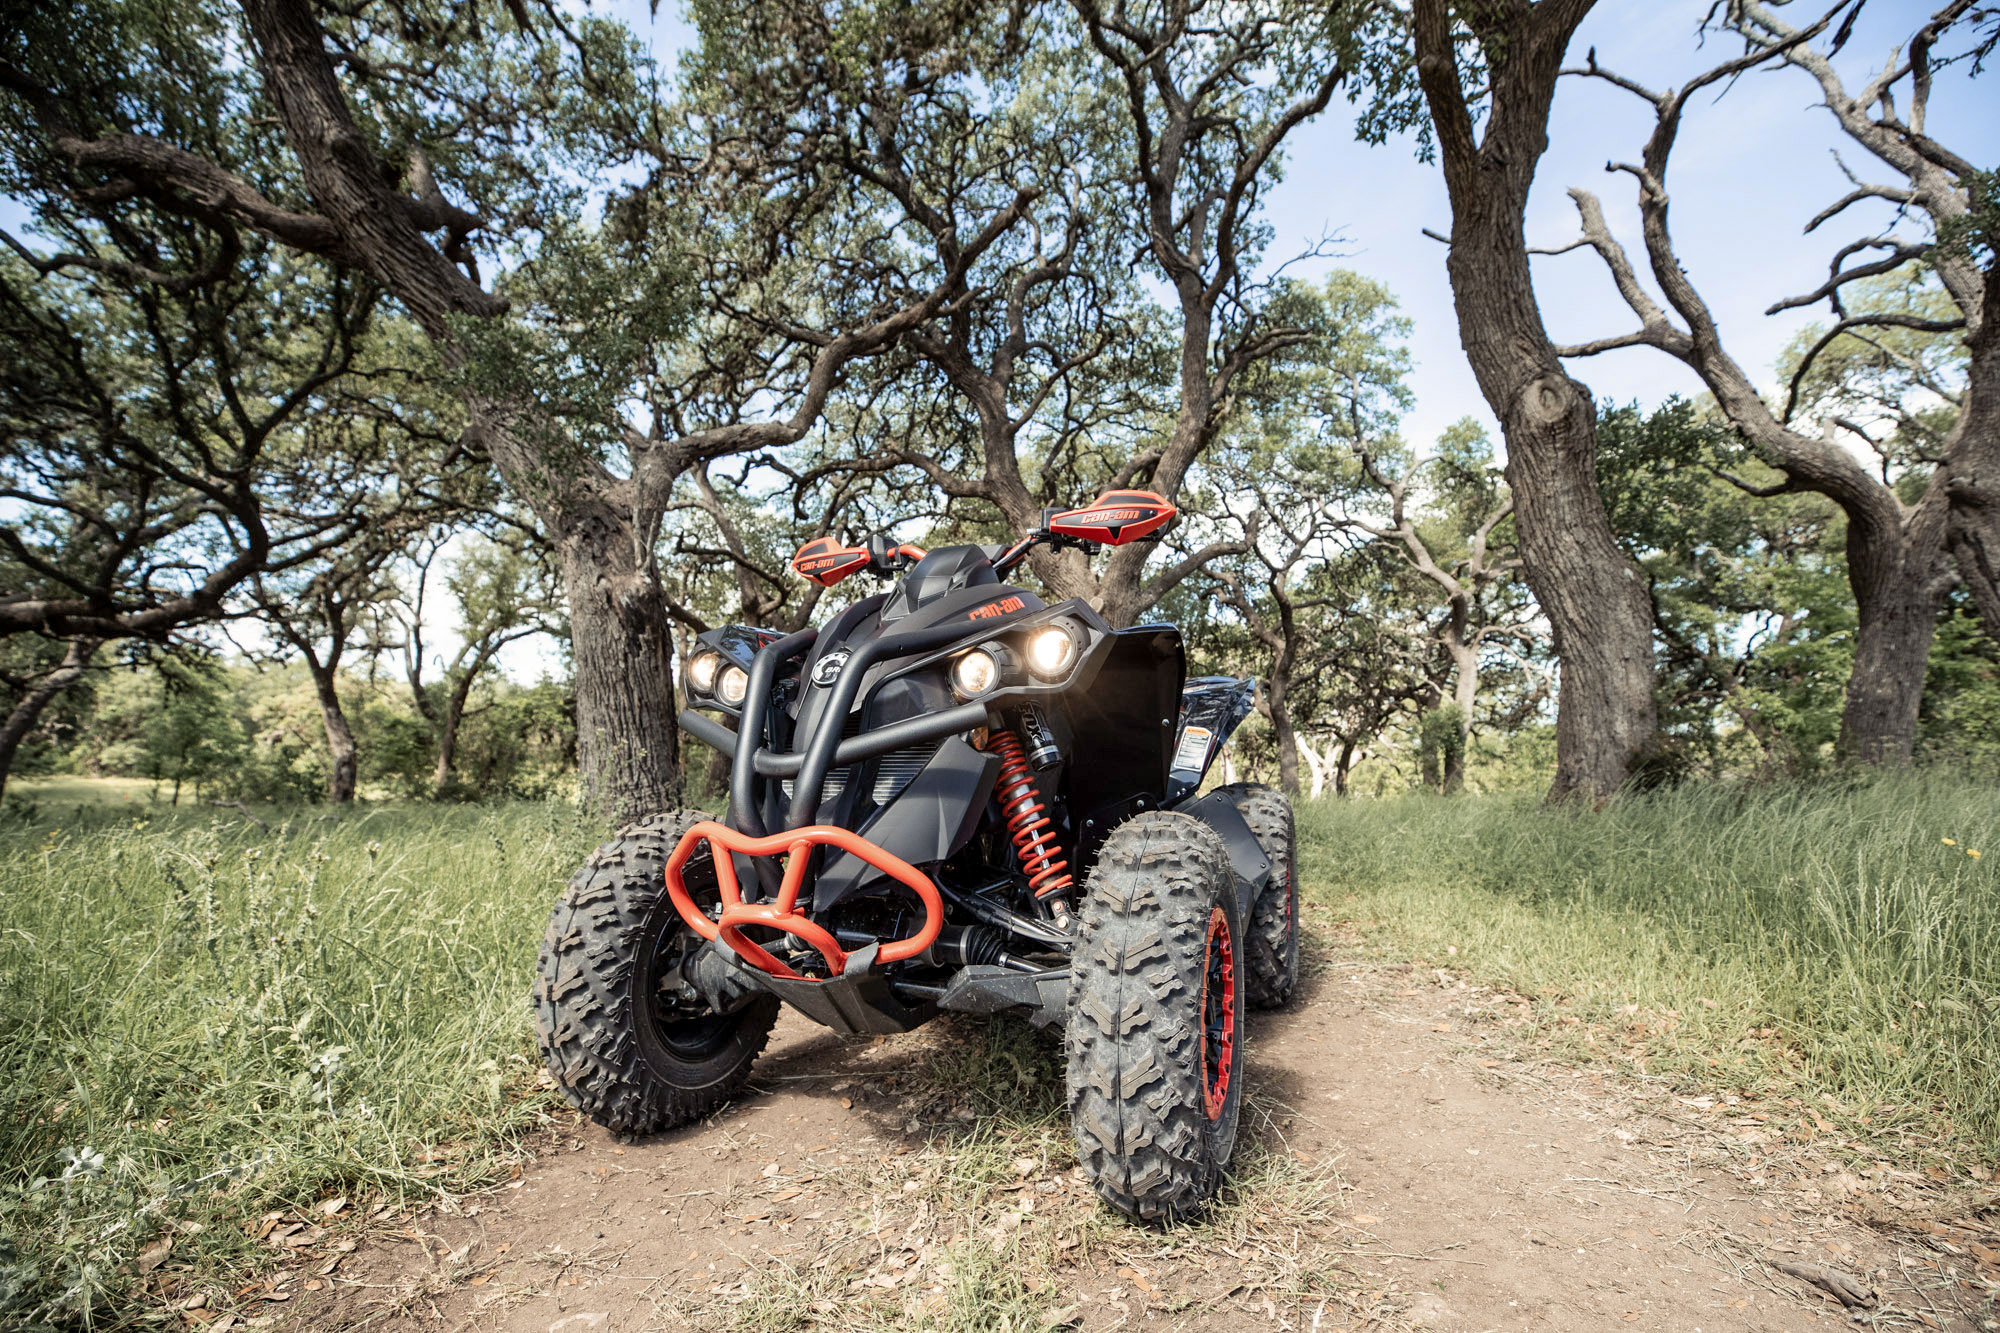 Black & Red Can-Am Renegade X xc ATV